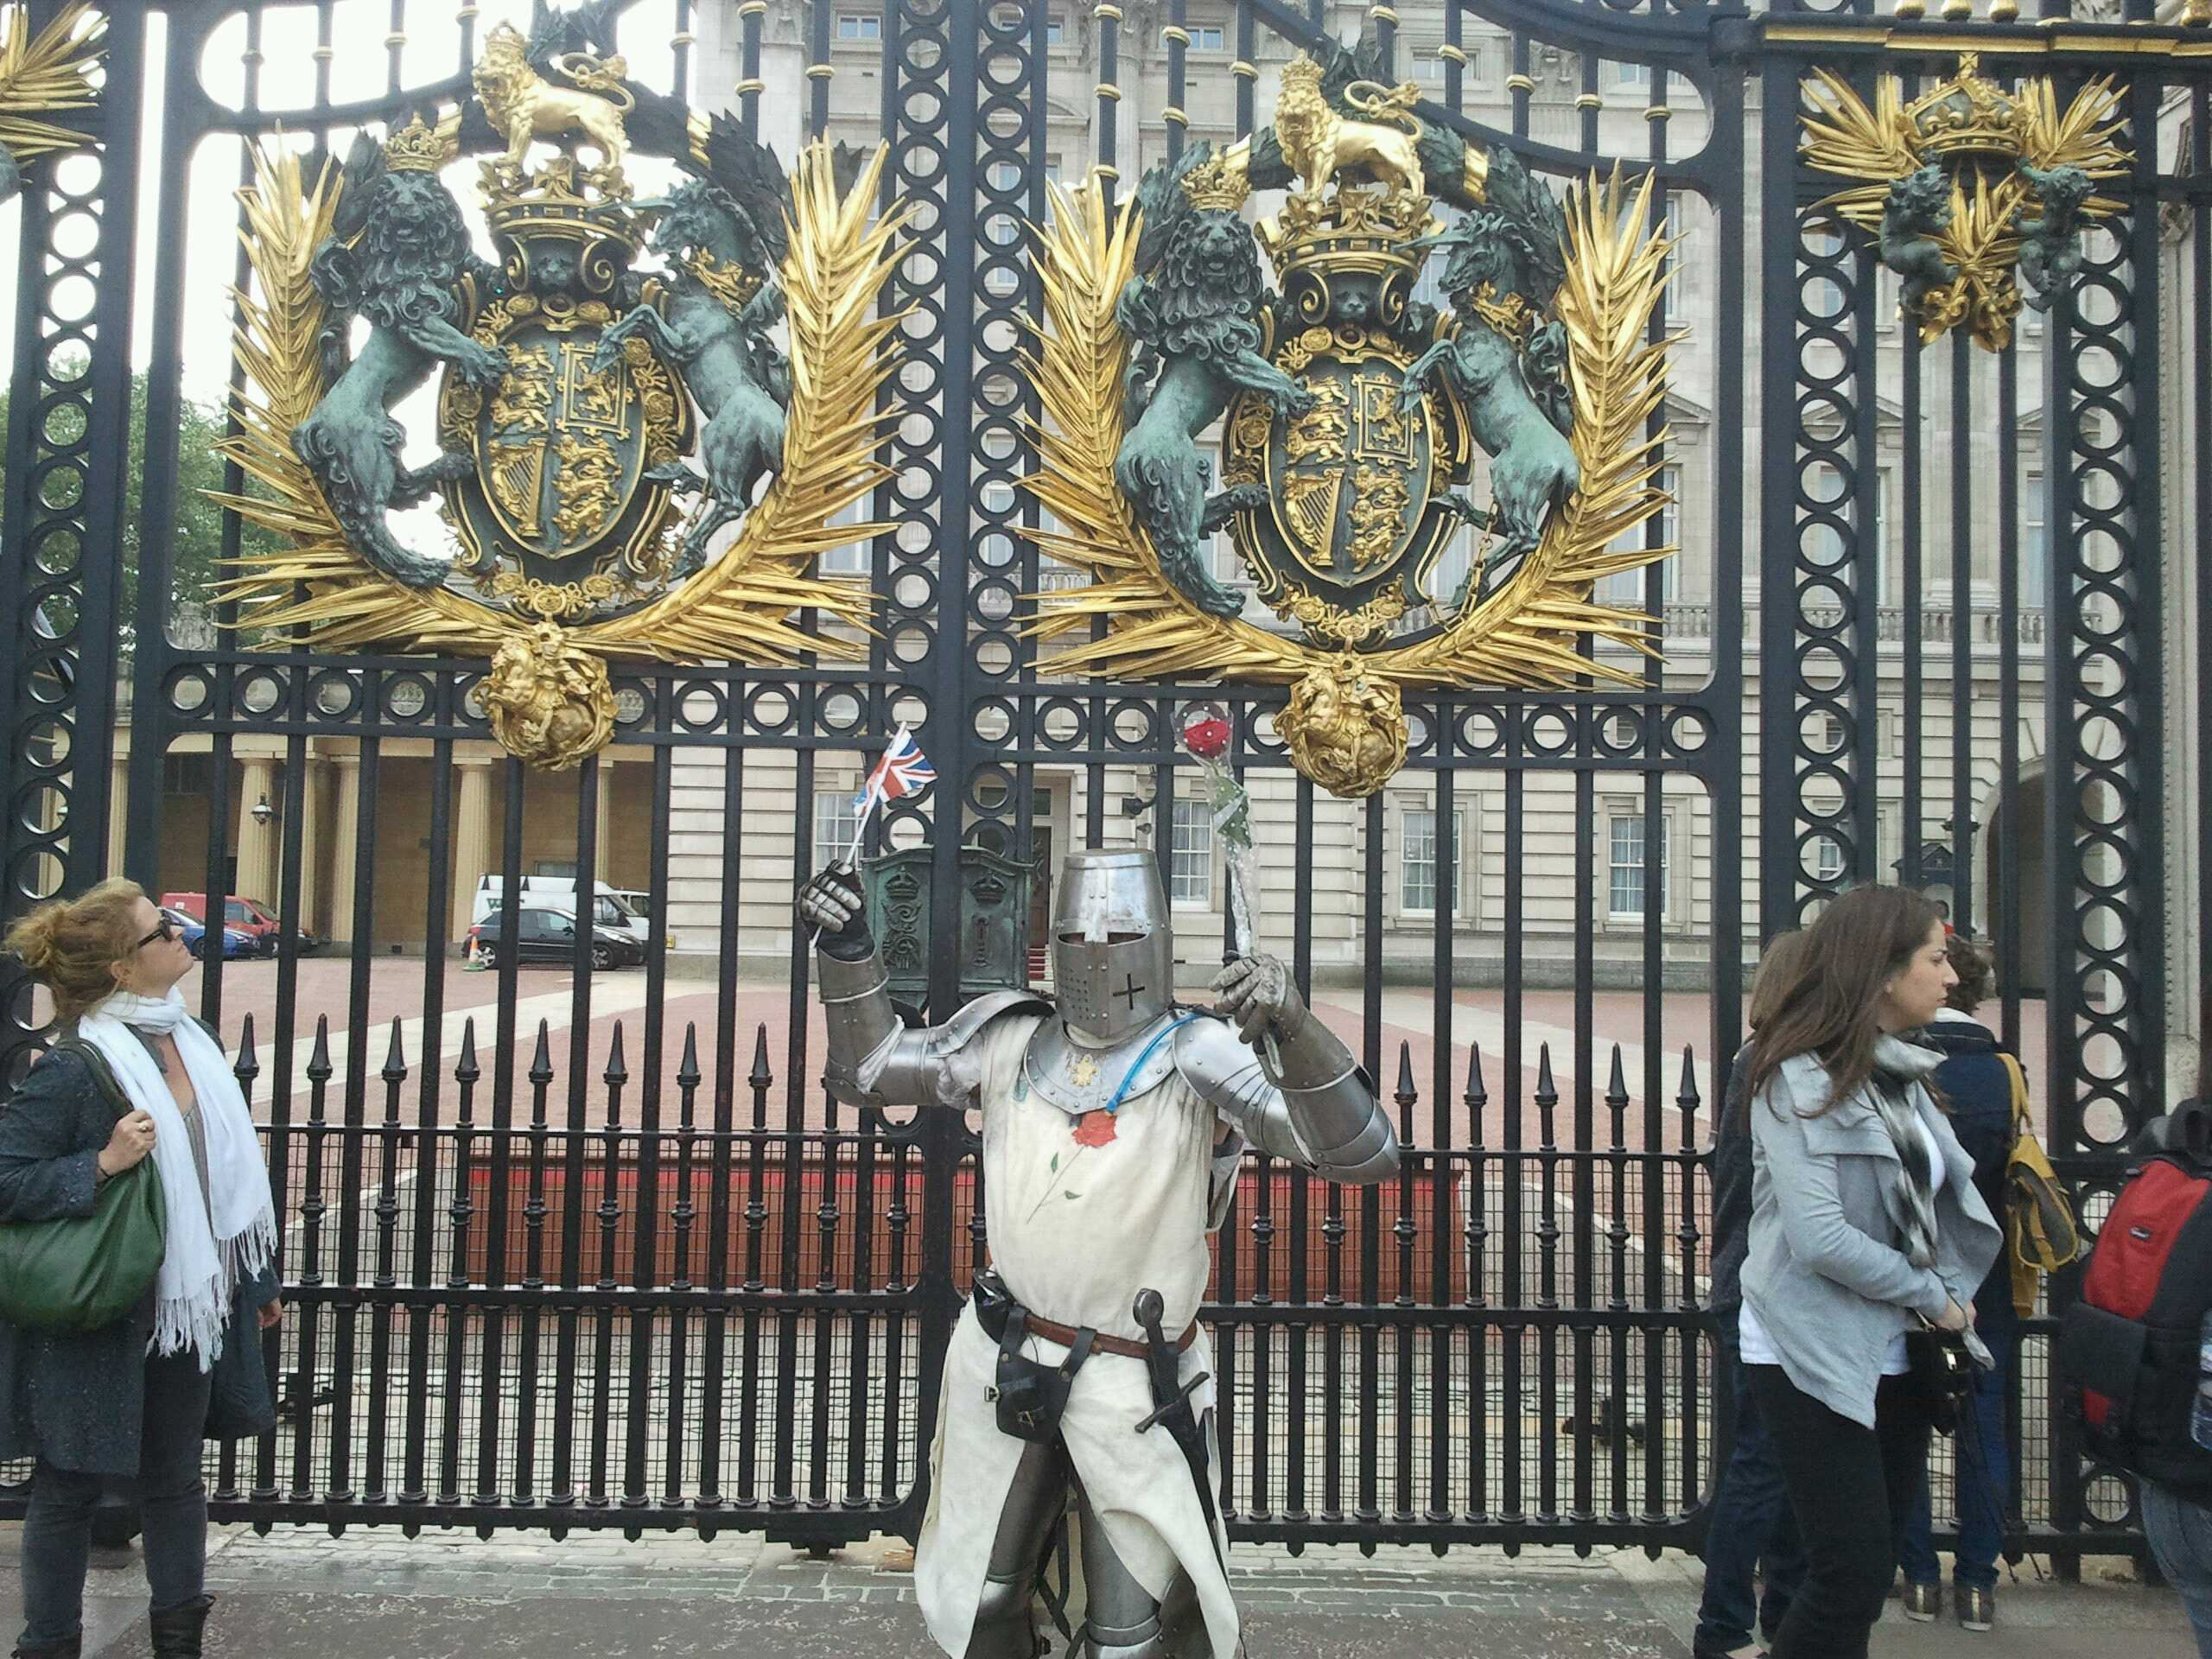 Hurrah! After 5 full days, 60 miles and countless blisters he's at Buckingham Palace